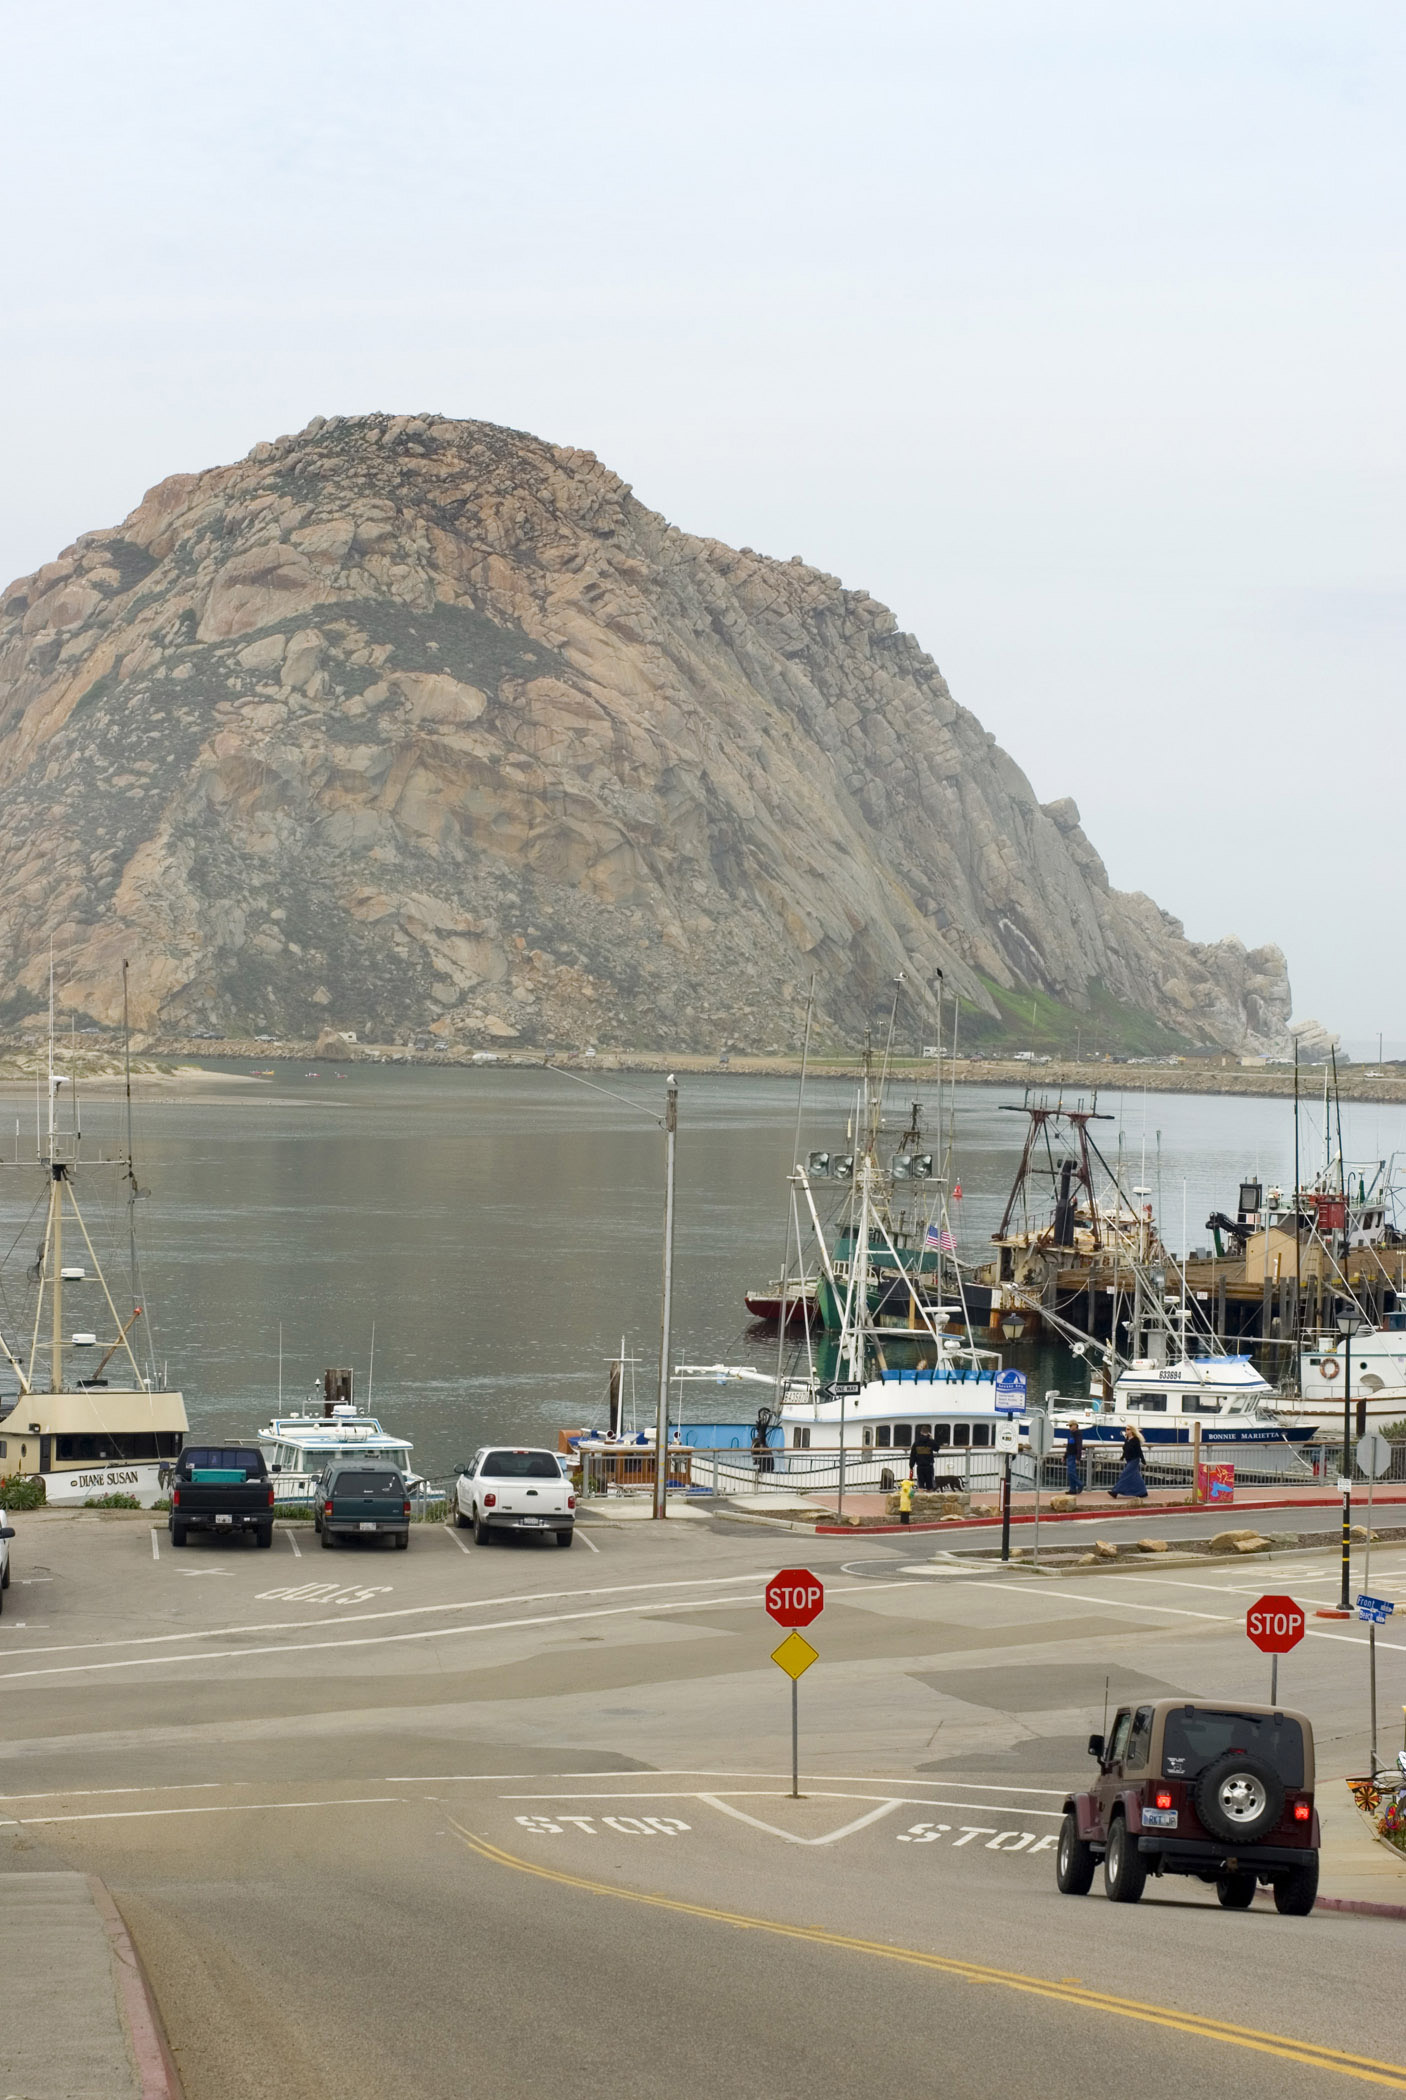 The seaside village of Morro Bay is a picture-perfect getaway for travelers seeking outdoor adventures and a gorgeous natural setting.